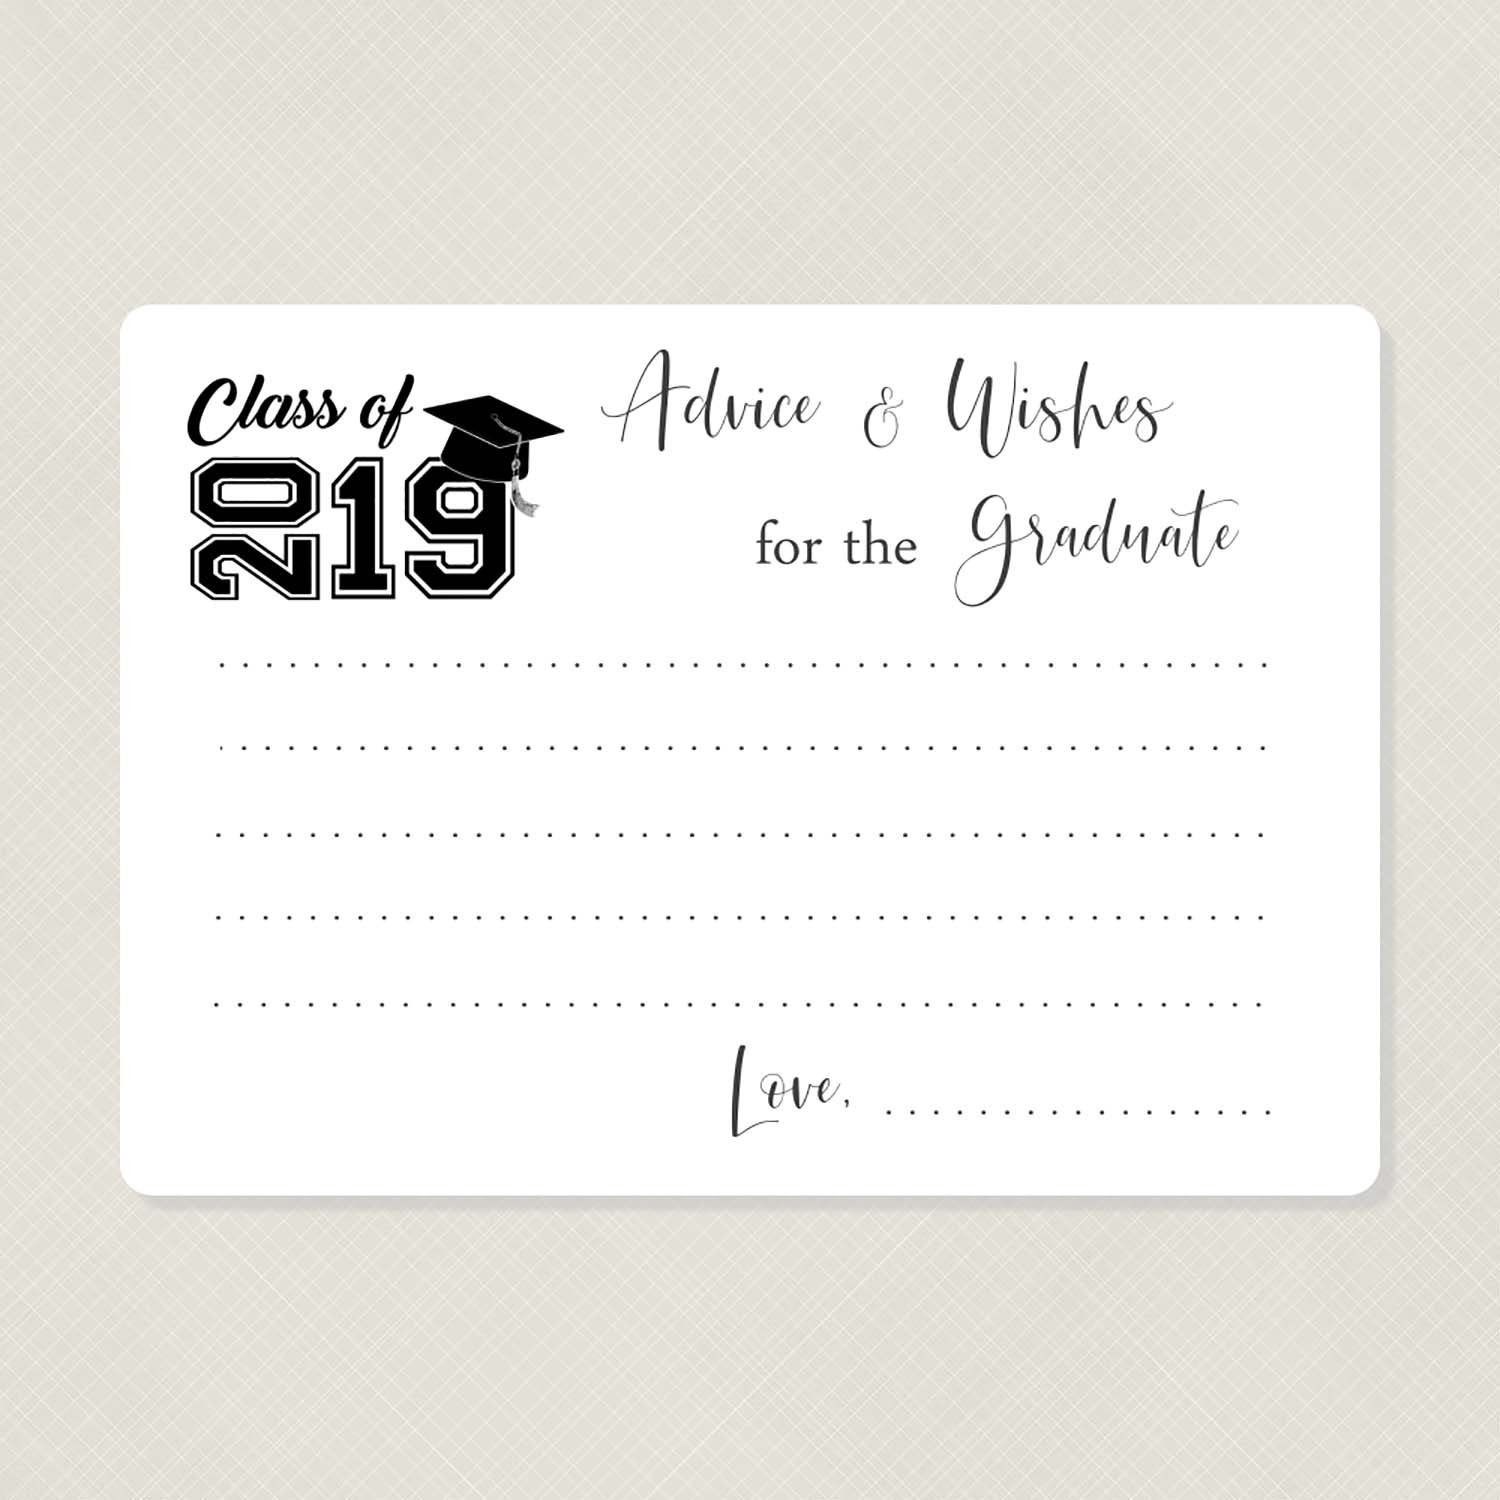 Graduation Advice Cards - Wishes For The Graduate - Class Of 2019, G19 throughout Blank Graduation Advice Sheets